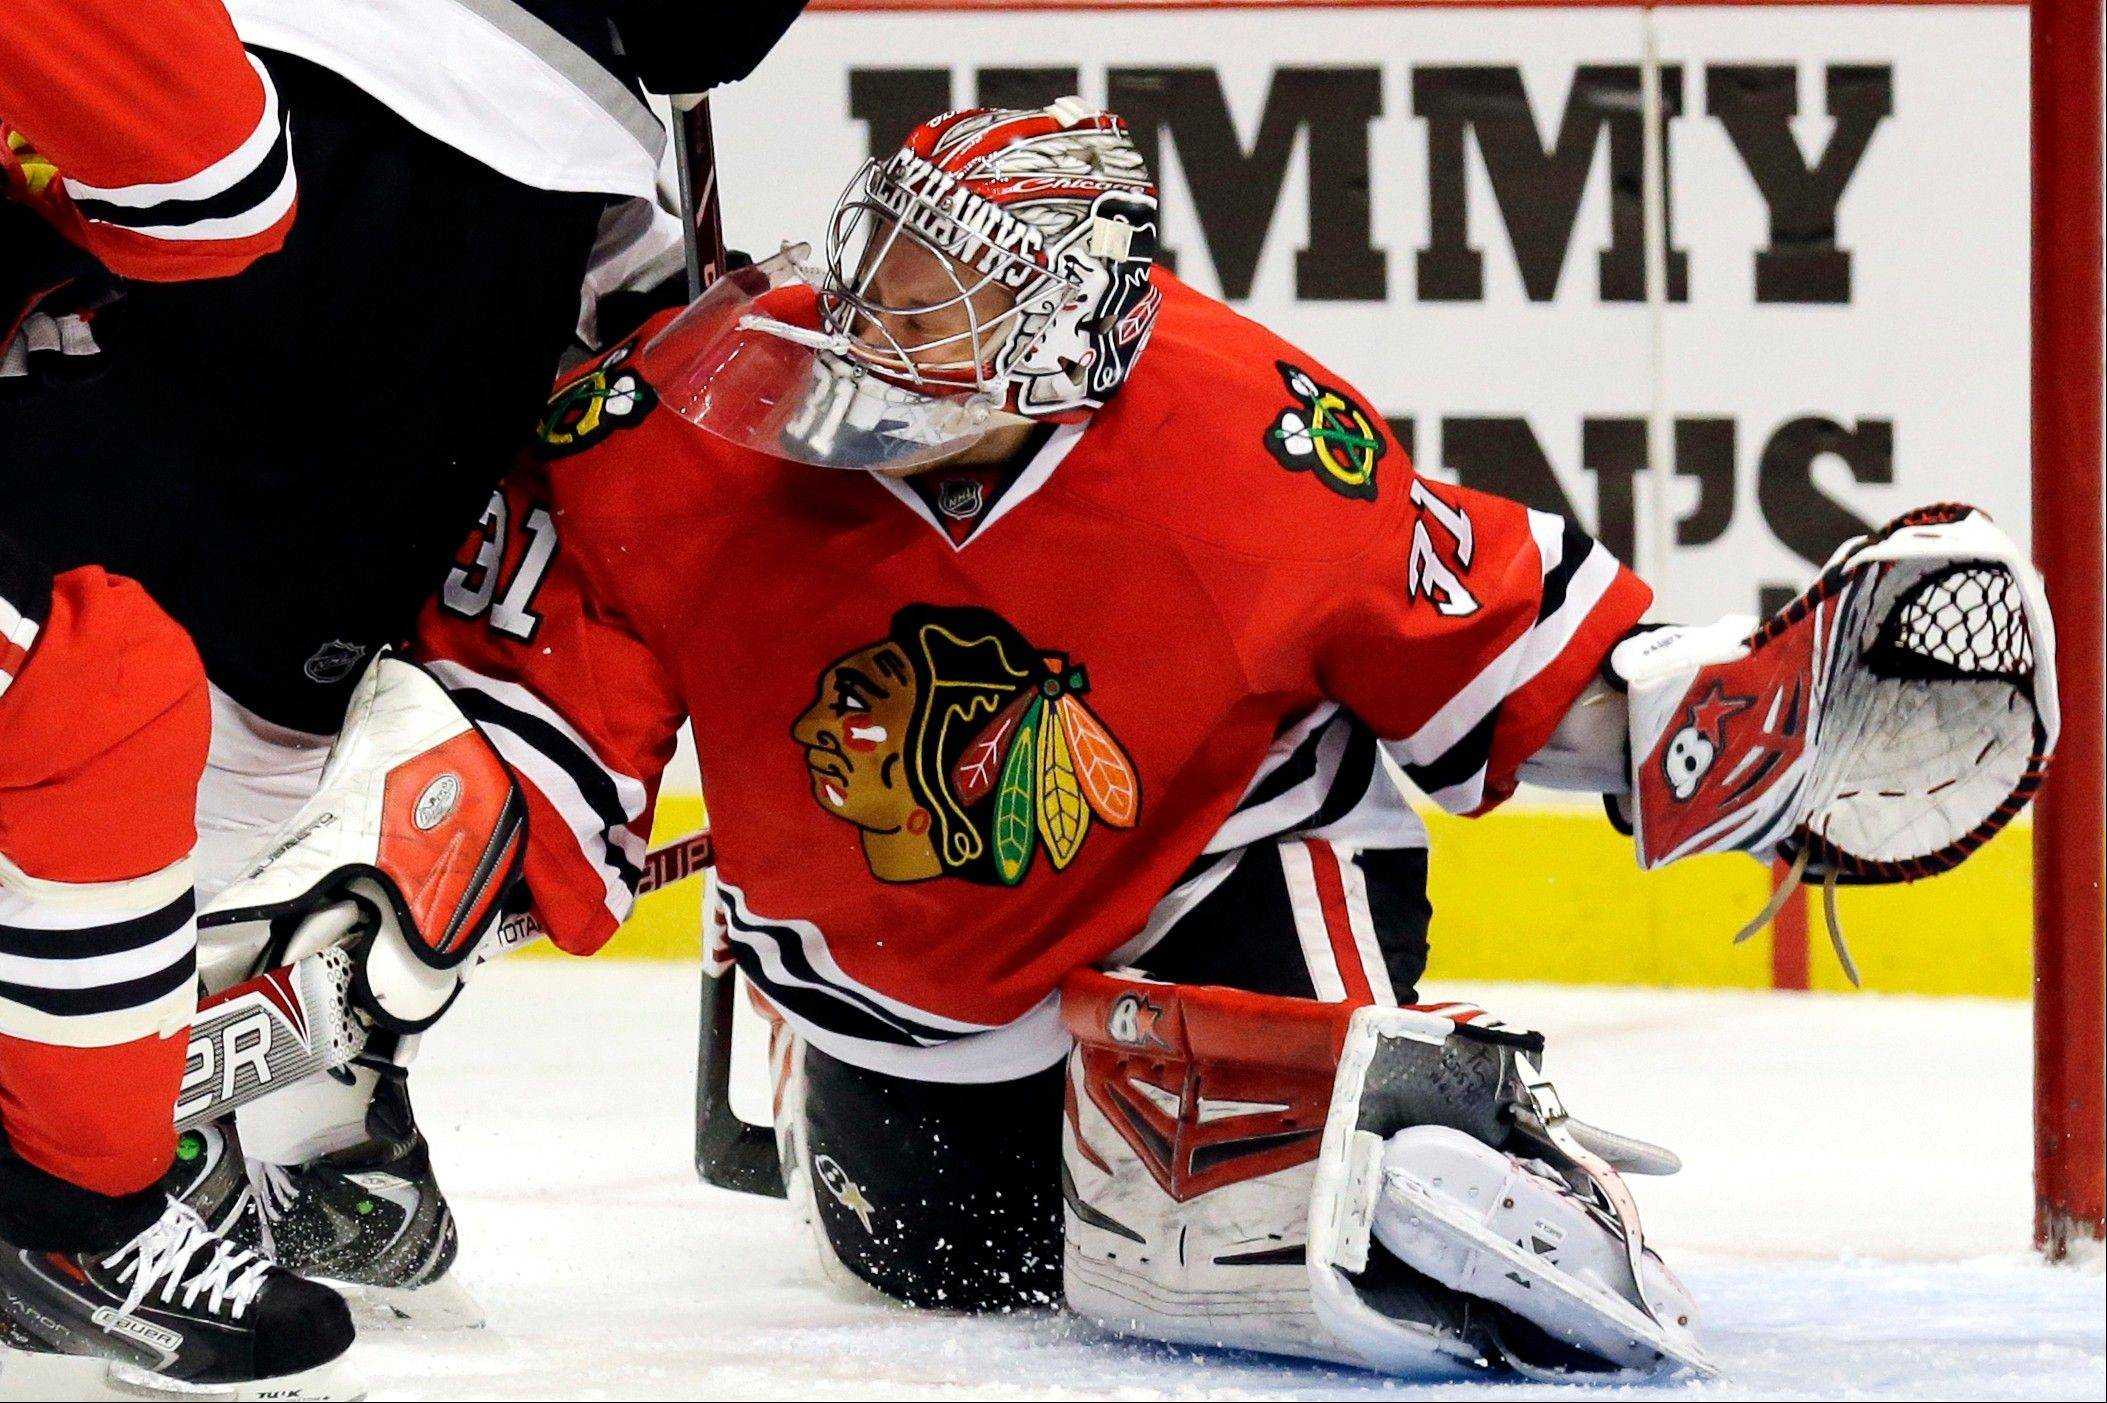 Antti Raanta is 7-1-1 with a 2.26 goals-against average and has helped keep the Blackhawks on top of the NHL.